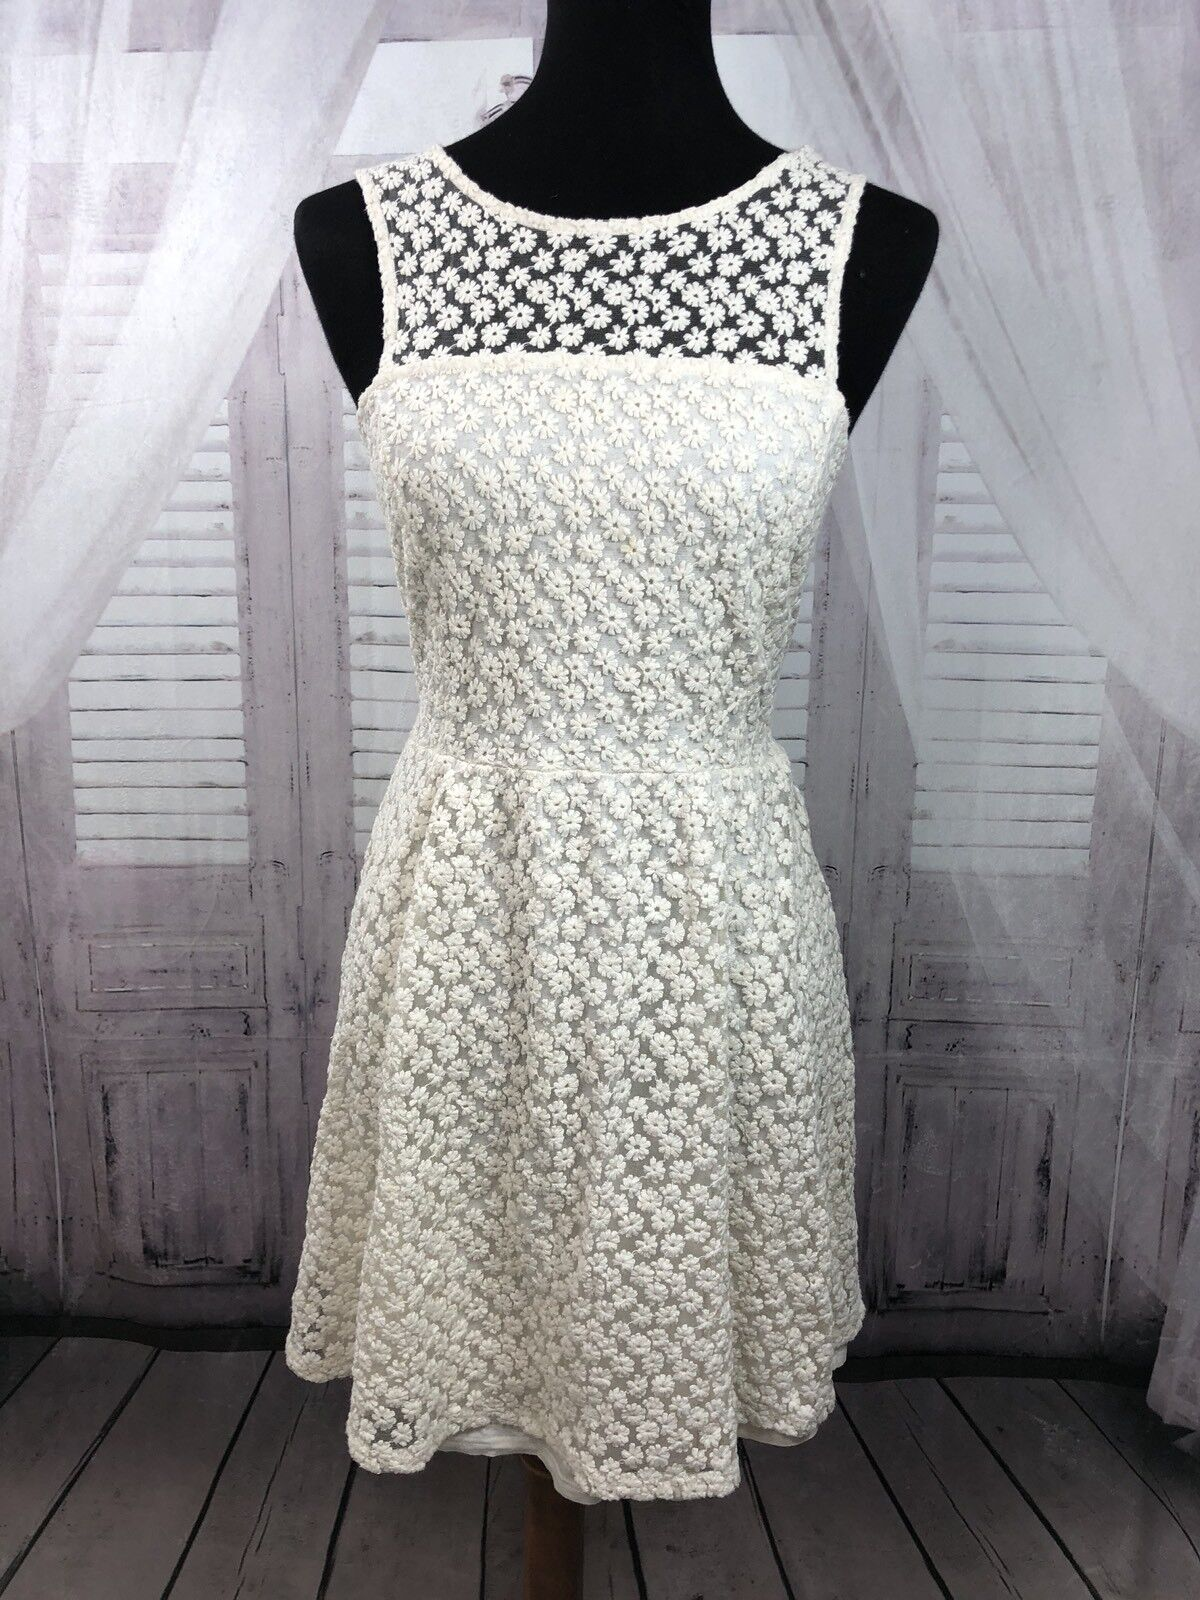 Ella Moss Fit and Flare Dress Floral Lace Overlay Ivory Sz Medium